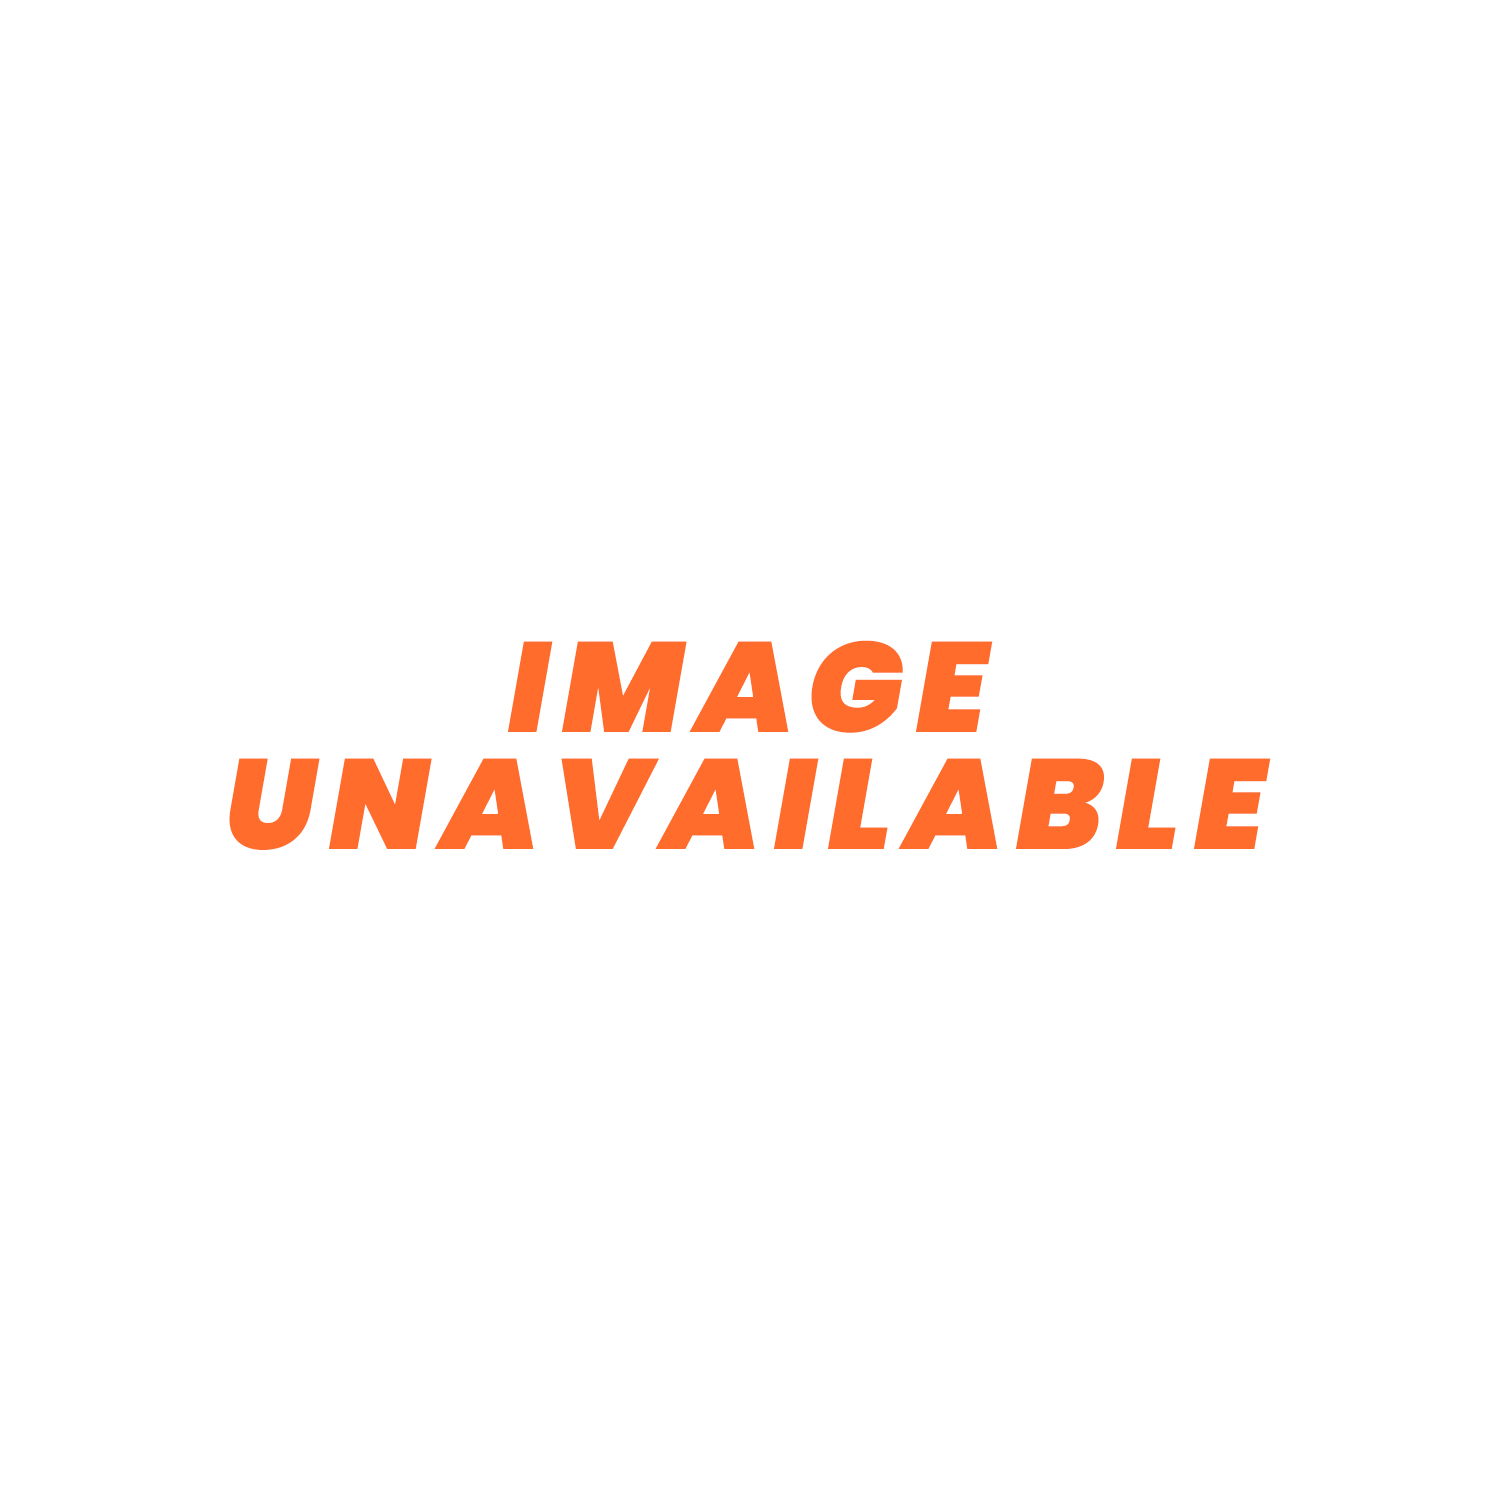 Sanden SD5H09 5086 82cc Compressor Poly-V 5 Rib Horizontal 125mm 12v